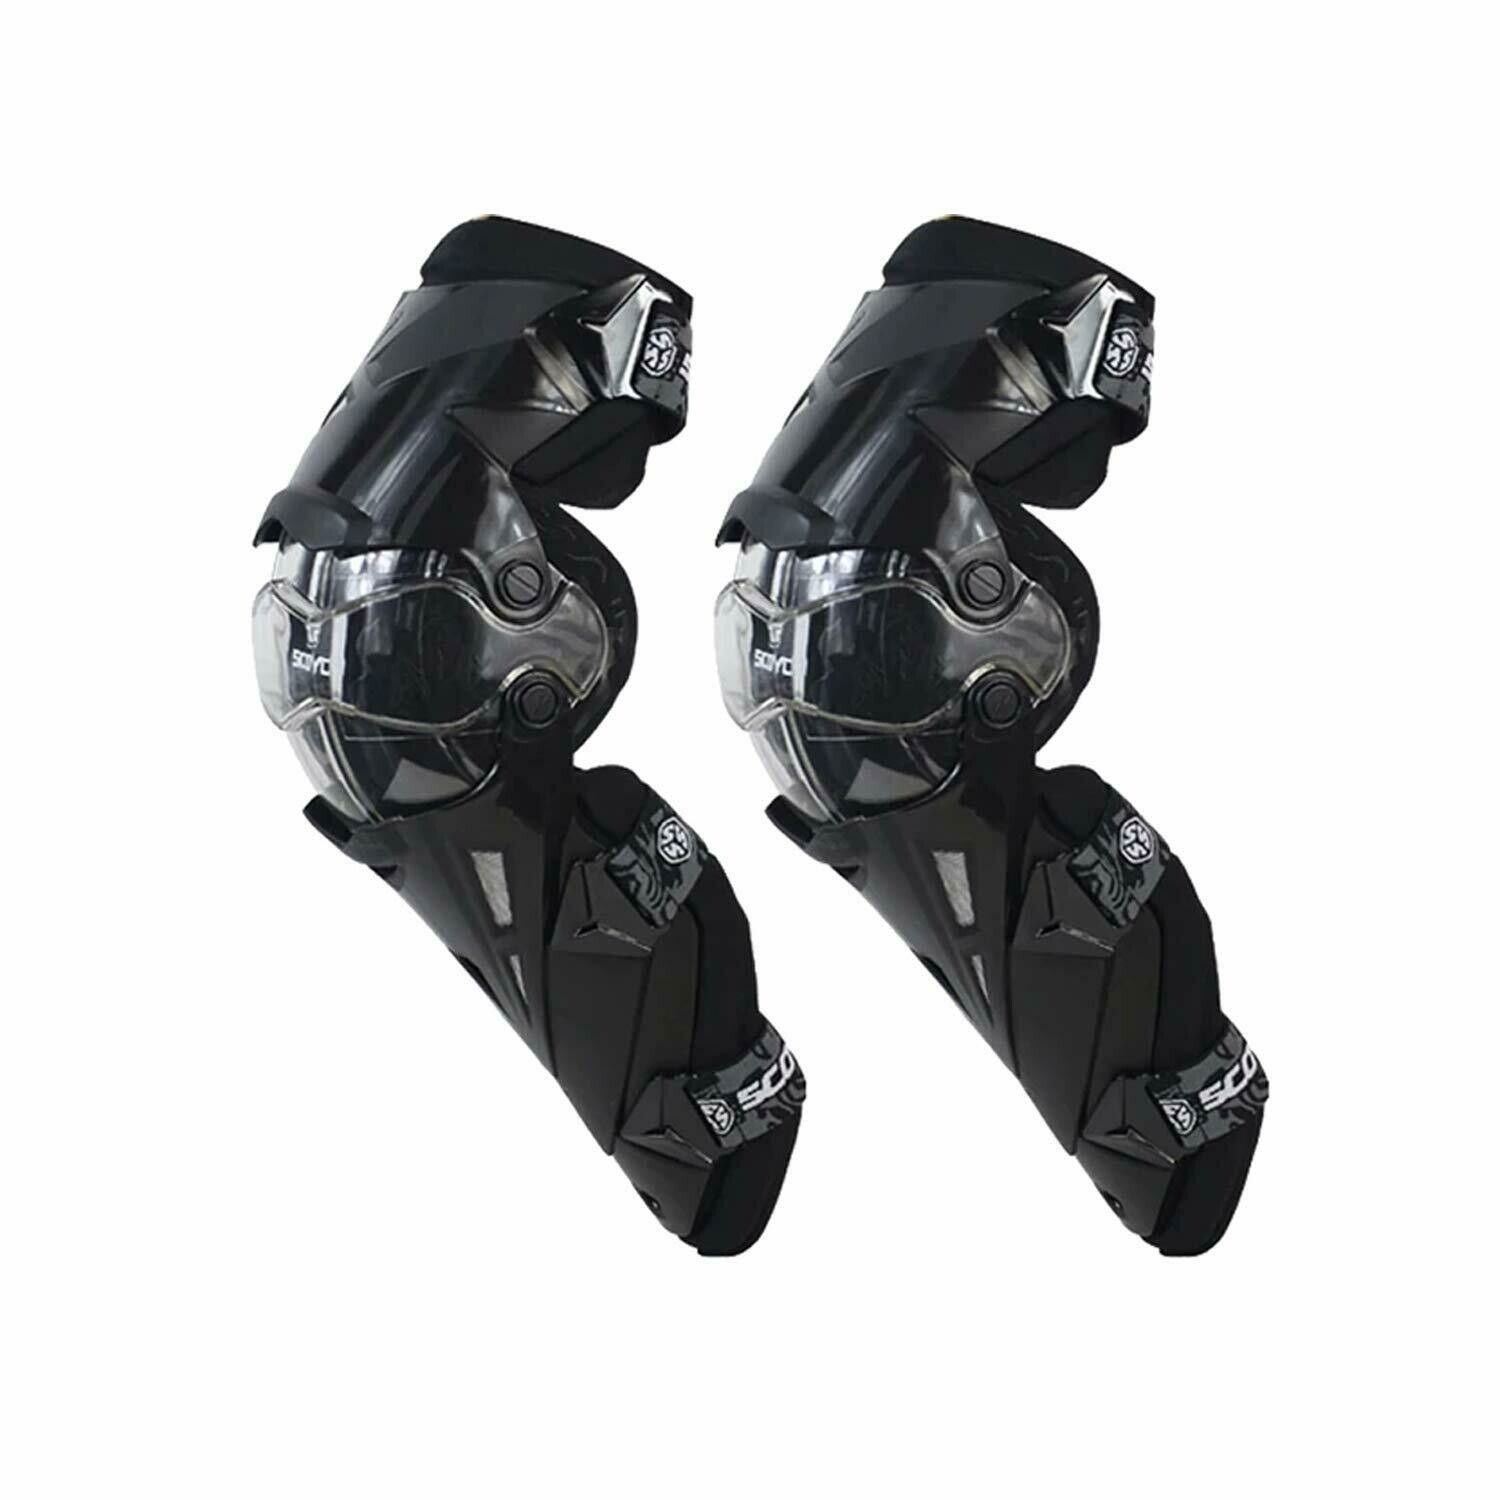 Scoyco Motorcycle Bike Racing Riding Knee Guard K12 (Black)